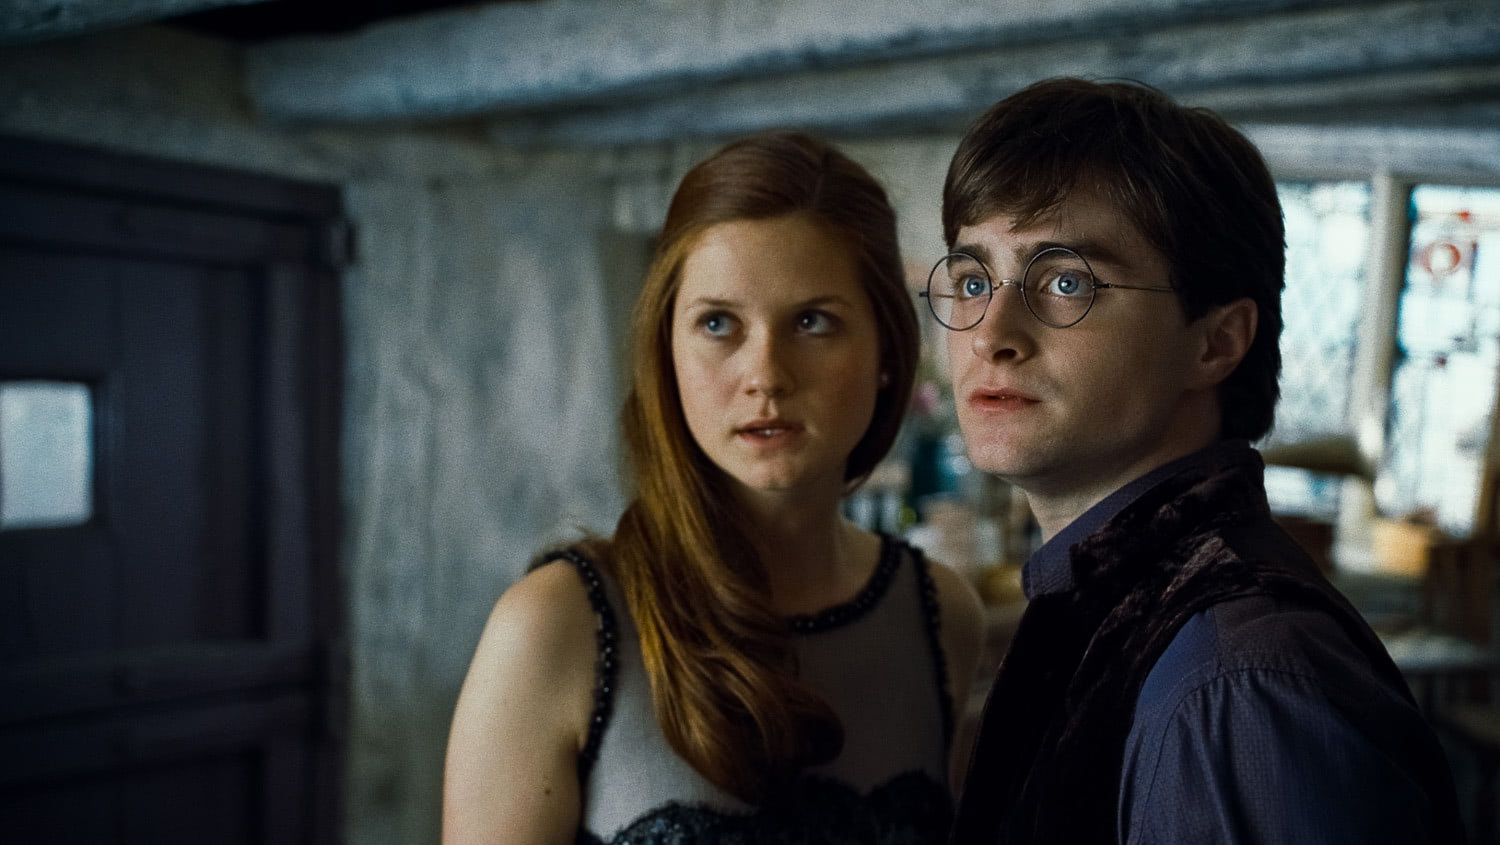 Harry and Ginny at The Burrow